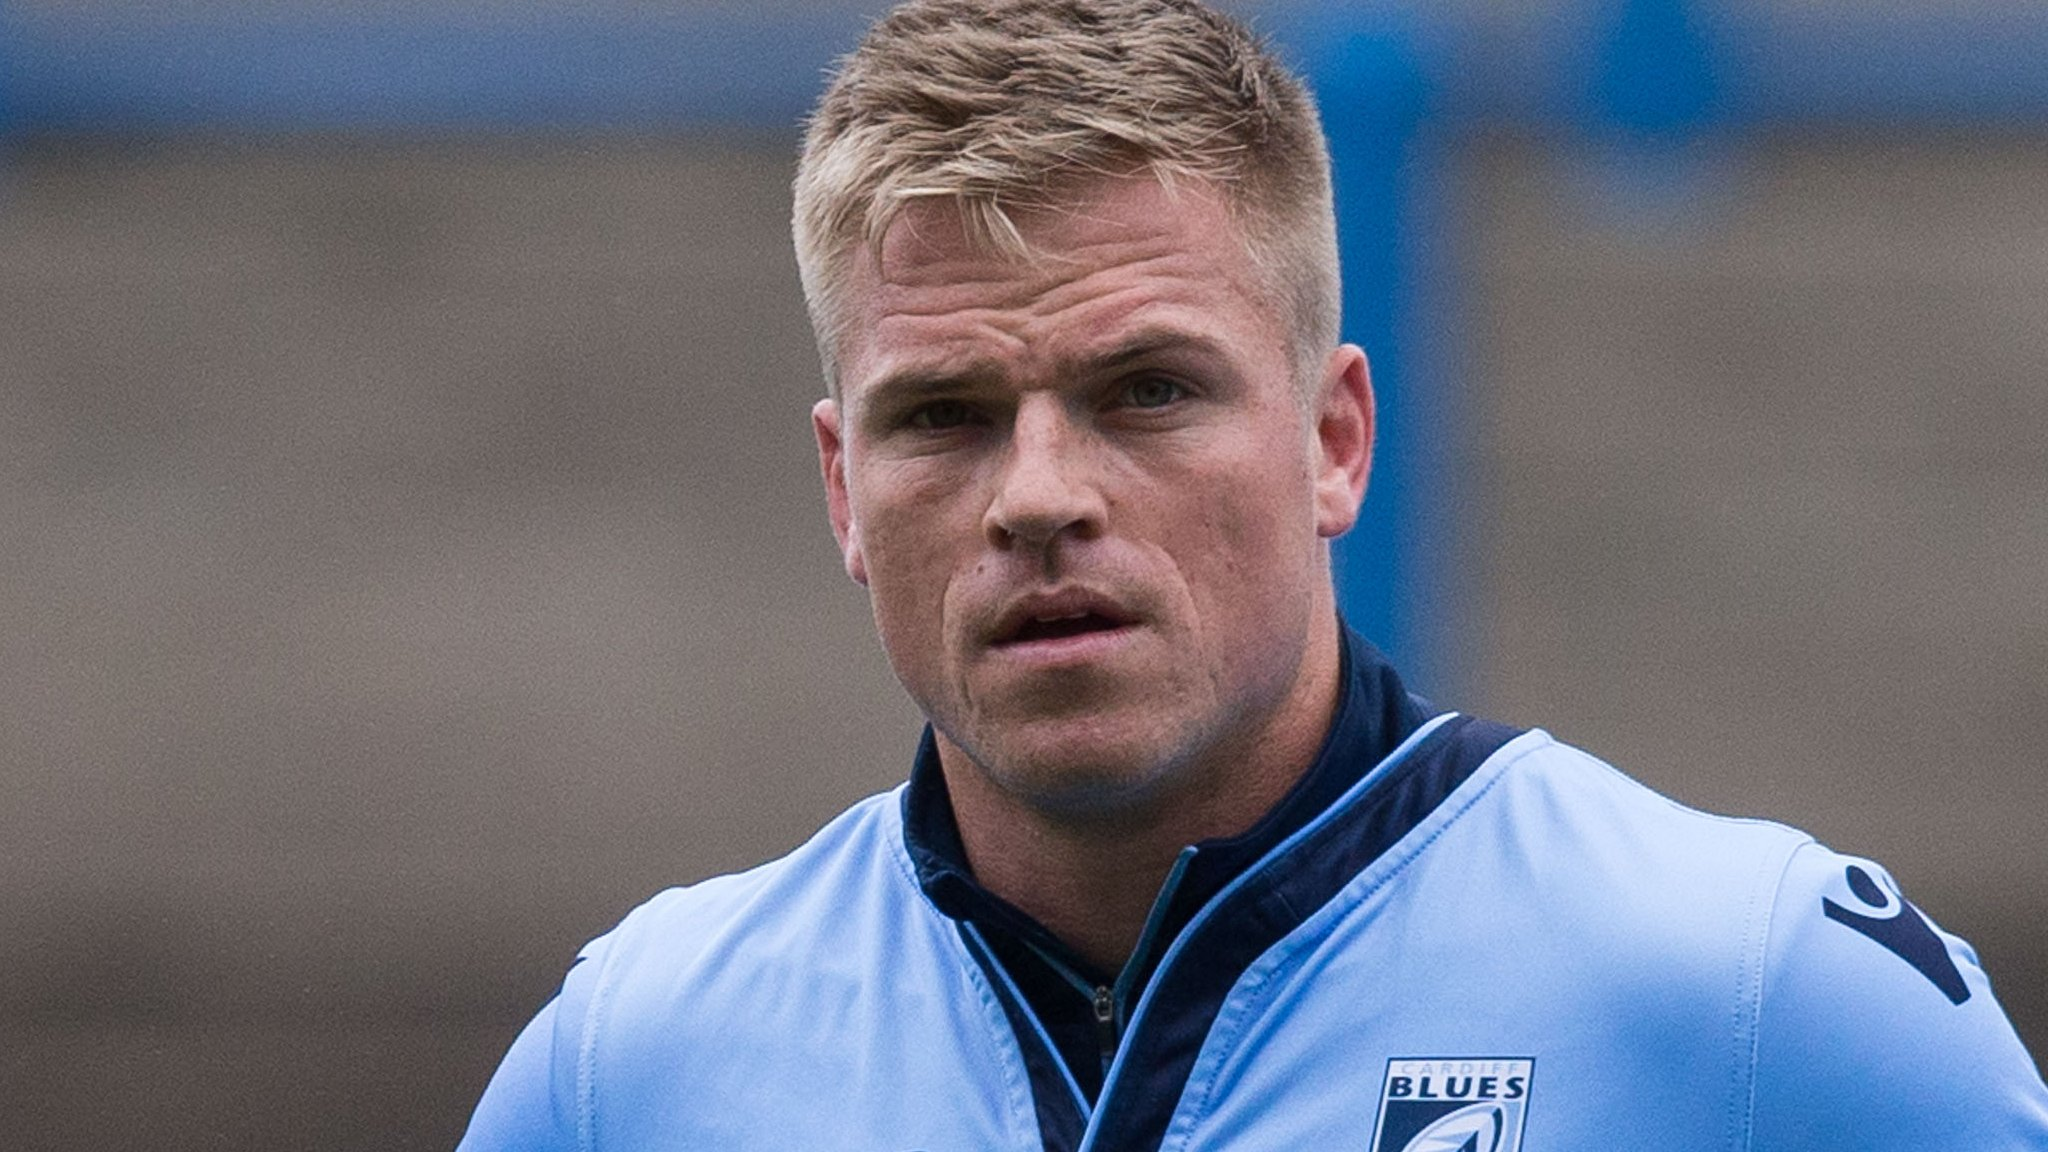 Gareth Anscombe: Cardiff Blues must do their best to keep Wales international - Rees